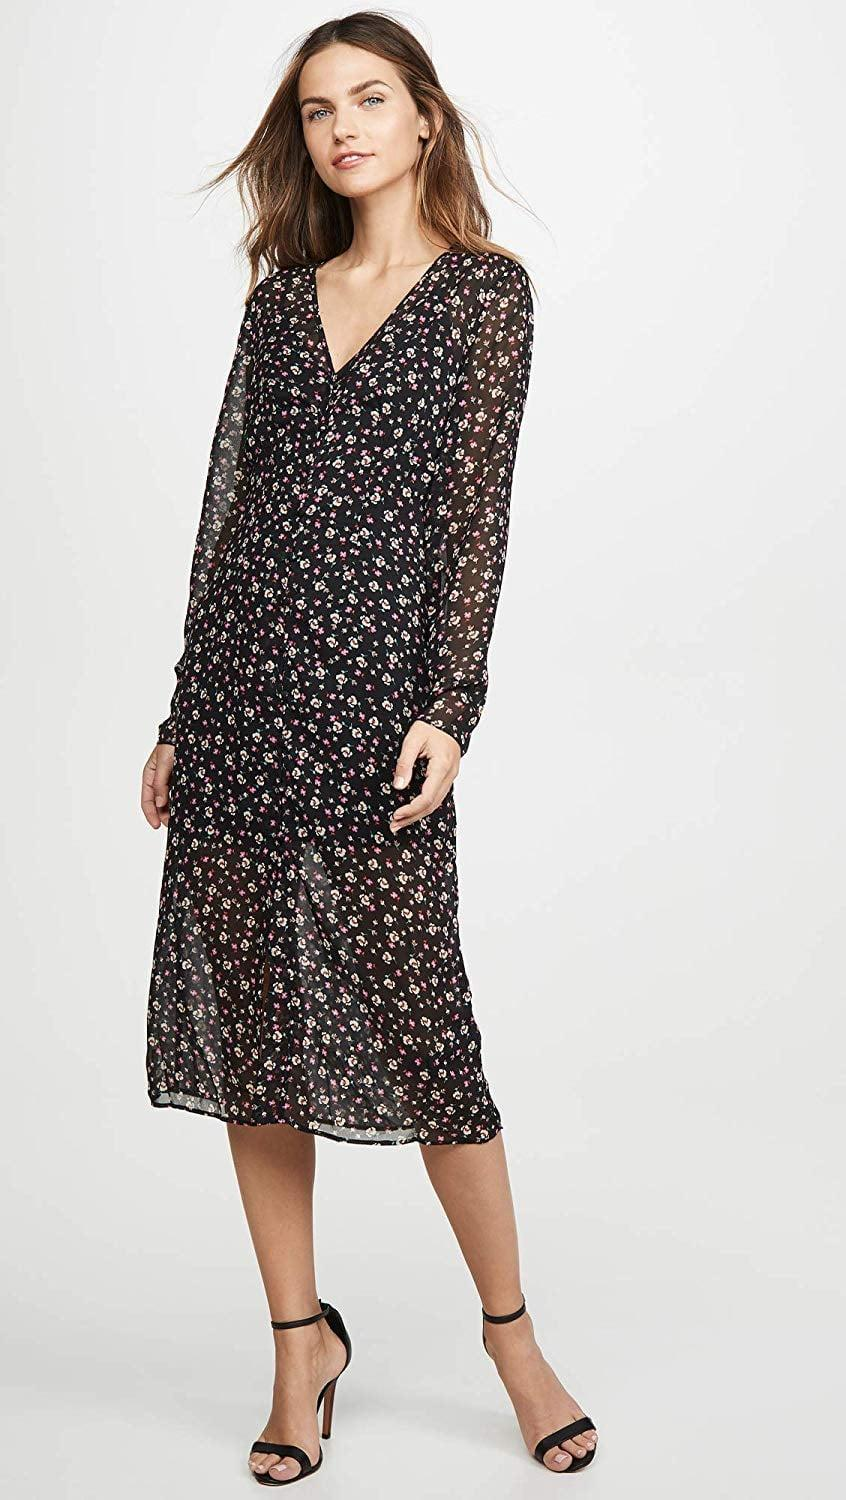 """<p>This <a href=""""https://www.popsugar.com/buy/Fifth-Label-Current-Long-Sleeved-Midi-Wrap-Dress-482392?p_name=The%20Fifth%20Label%20Current%20Long-Sleeved%20Midi%20Wrap%20Dress&retailer=amazon.com&pid=482392&price=91&evar1=fab%3Aus&evar9=46804763&evar98=https%3A%2F%2Fwww.popsugar.com%2Ffashion%2Fphoto-gallery%2F46804763%2Fimage%2F46804861%2FVersatile-Midi&list1=shopping%2Cfall%20fashion%2Camazon%2Cfall&prop13=mobile&pdata=1"""" class=""""link rapid-noclick-resp"""" rel=""""nofollow noopener"""" target=""""_blank"""" data-ylk=""""slk:The Fifth Label Current Long-Sleeved Midi Wrap Dress"""">The Fifth Label Current Long-Sleeved Midi Wrap Dress</a> ($91) will look cool with a leather jacket.</p>"""